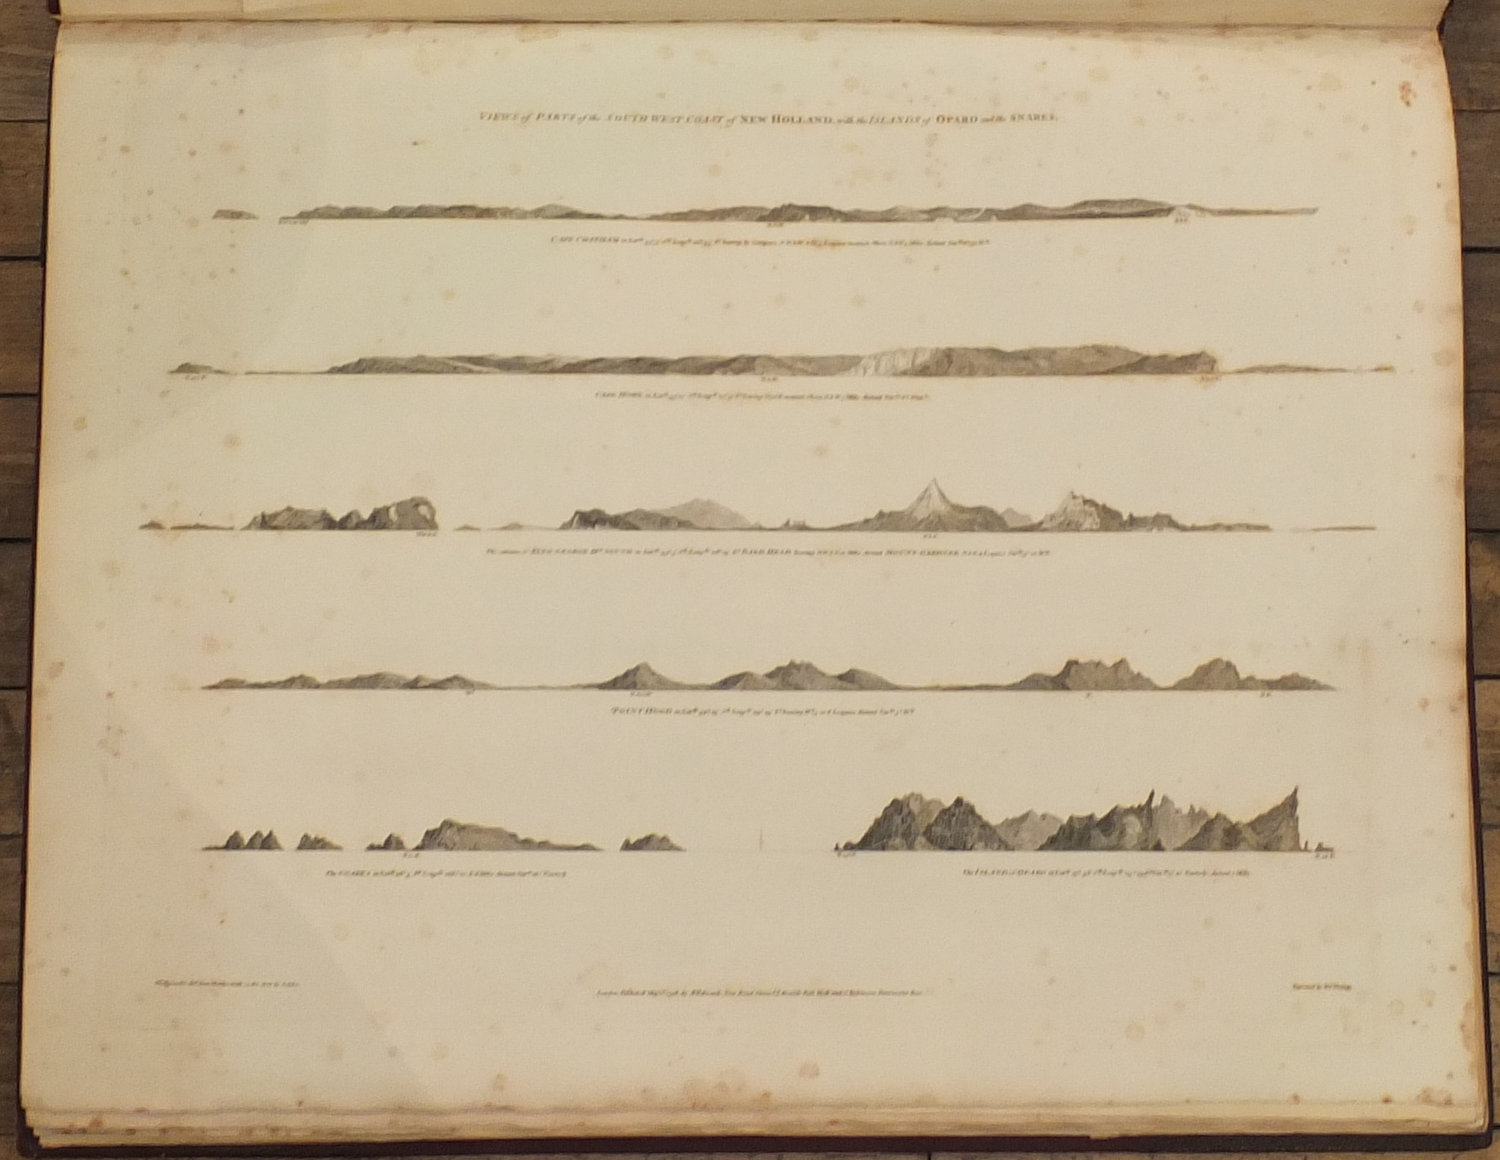 A Voyage Of Discovery To The North Pacific Ocean And Round World London GG J Robinson Edwards 1798